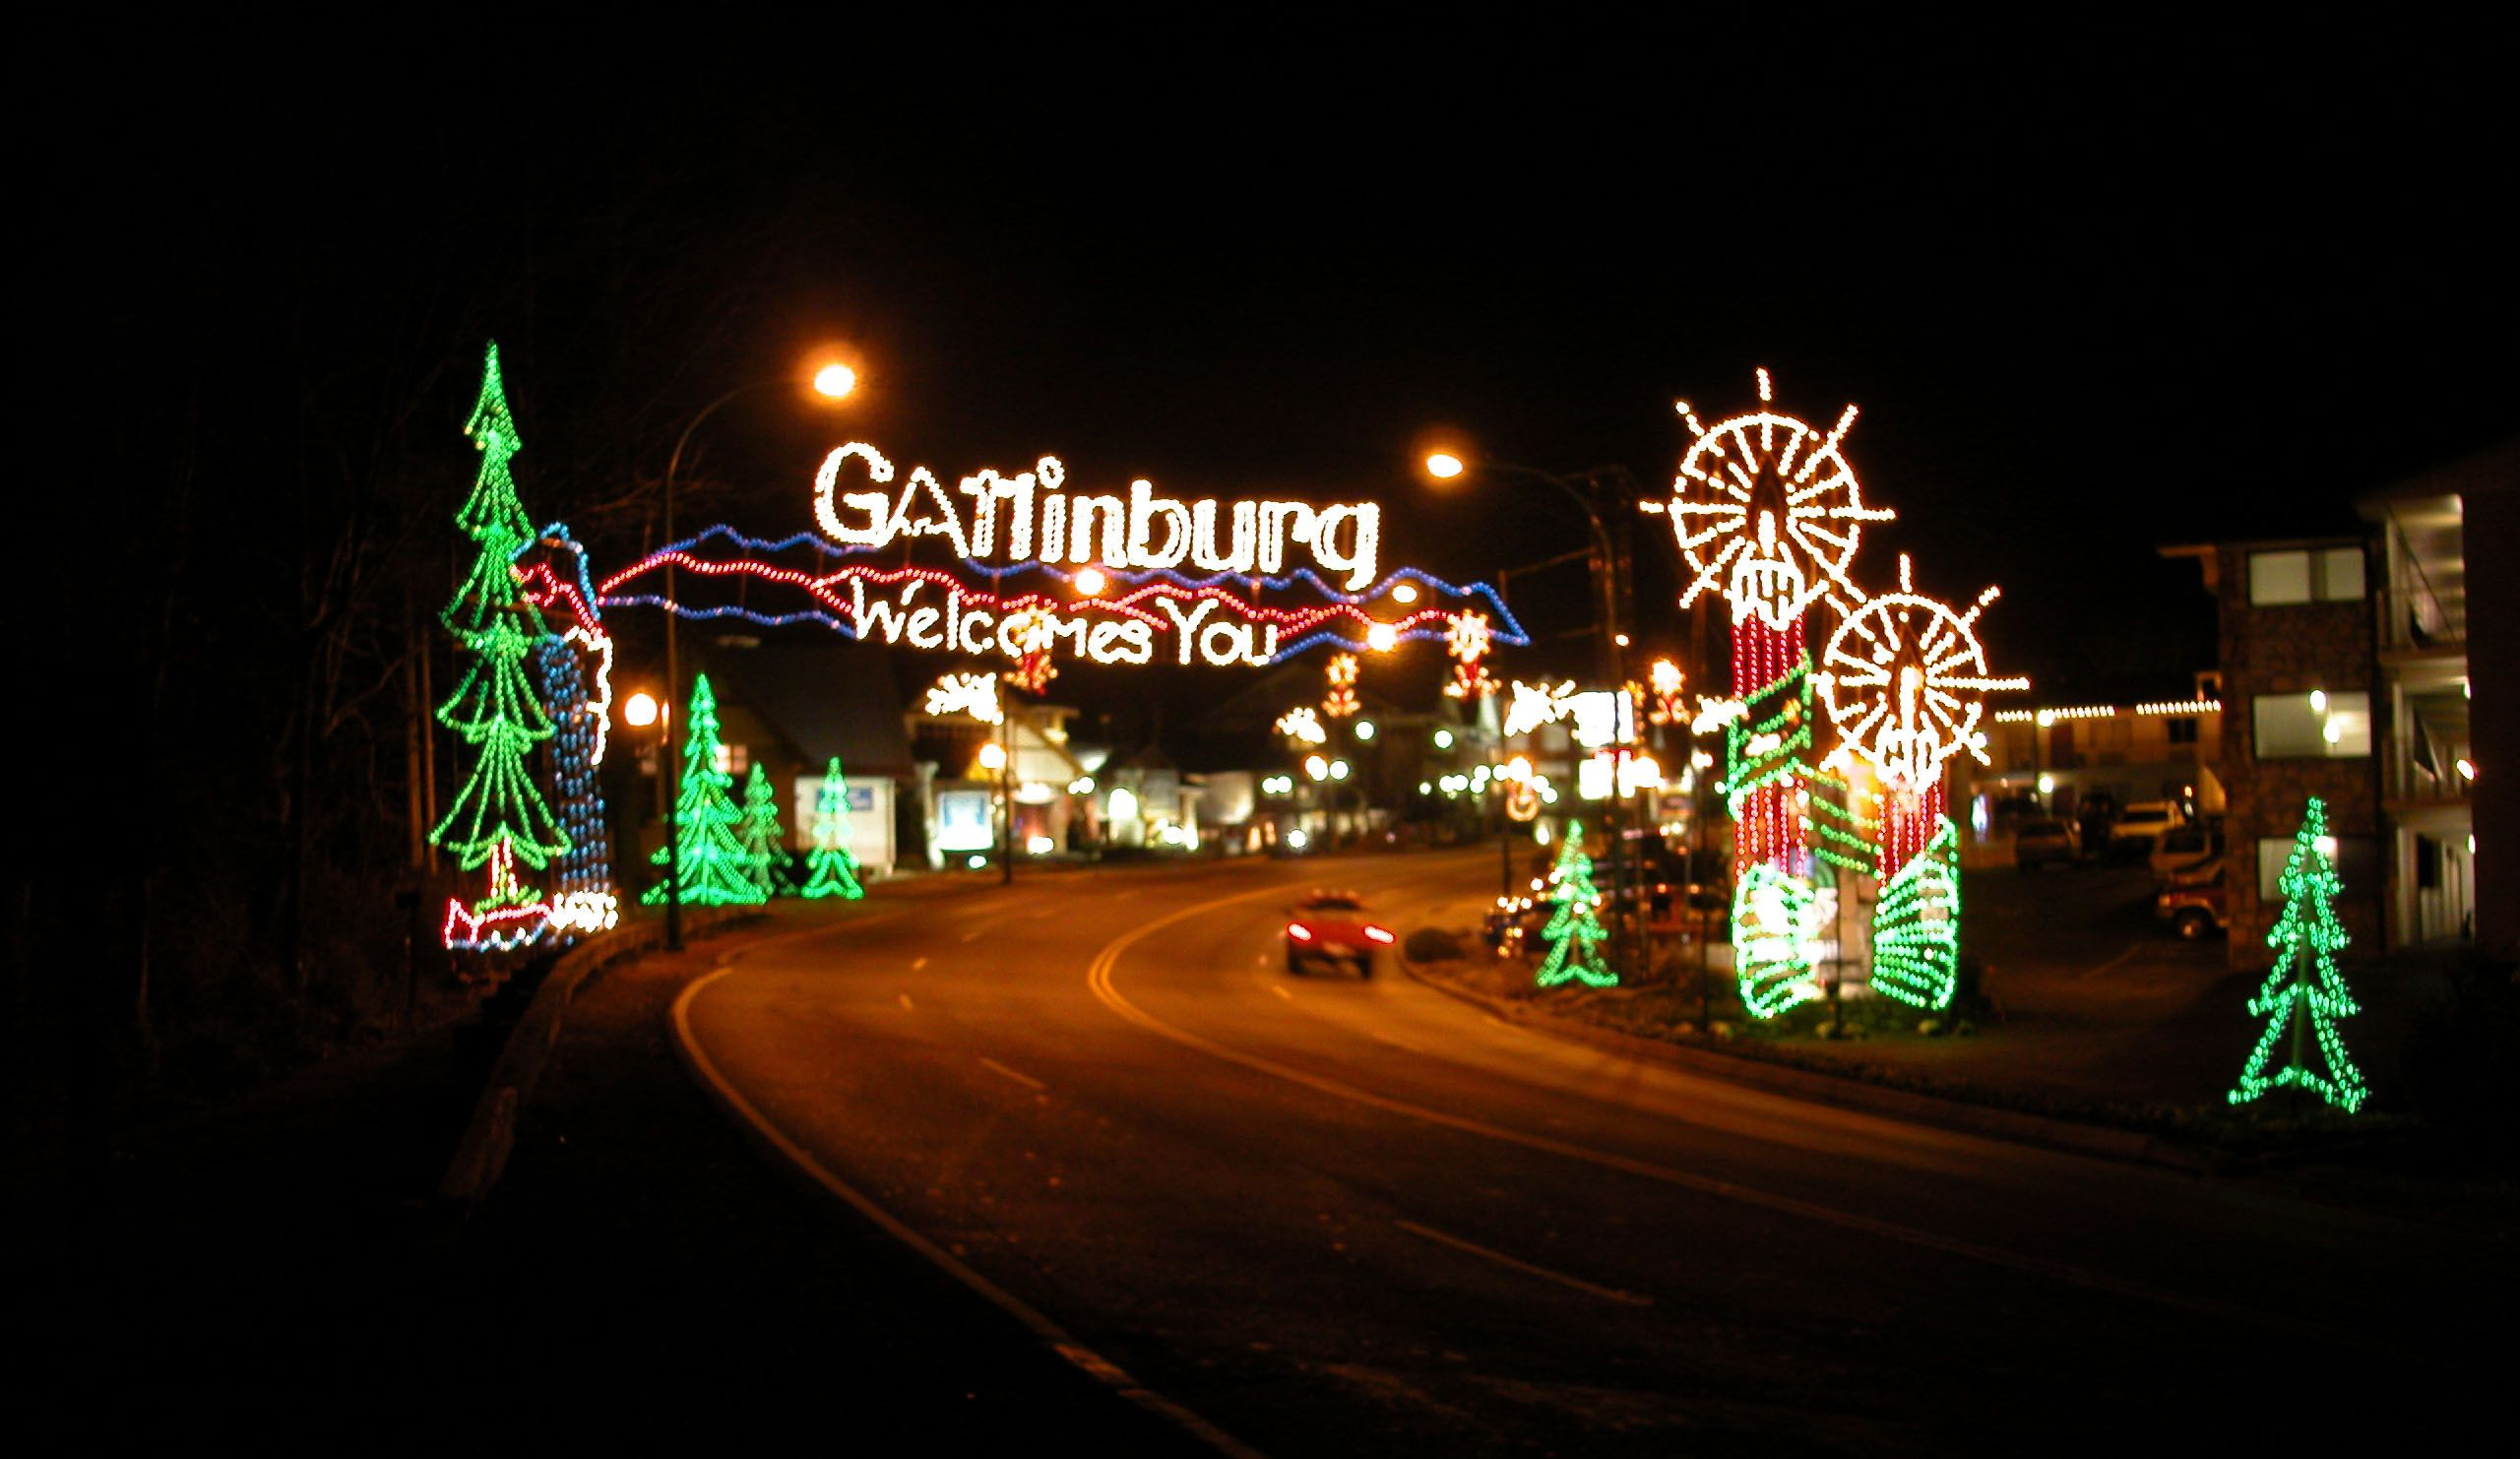 Gatlinburg Celebrates Winter With Over 3 Million Lights Throughout The City Gatlinburg Vacation Gatlinburg Christmas Tennessee Christmas